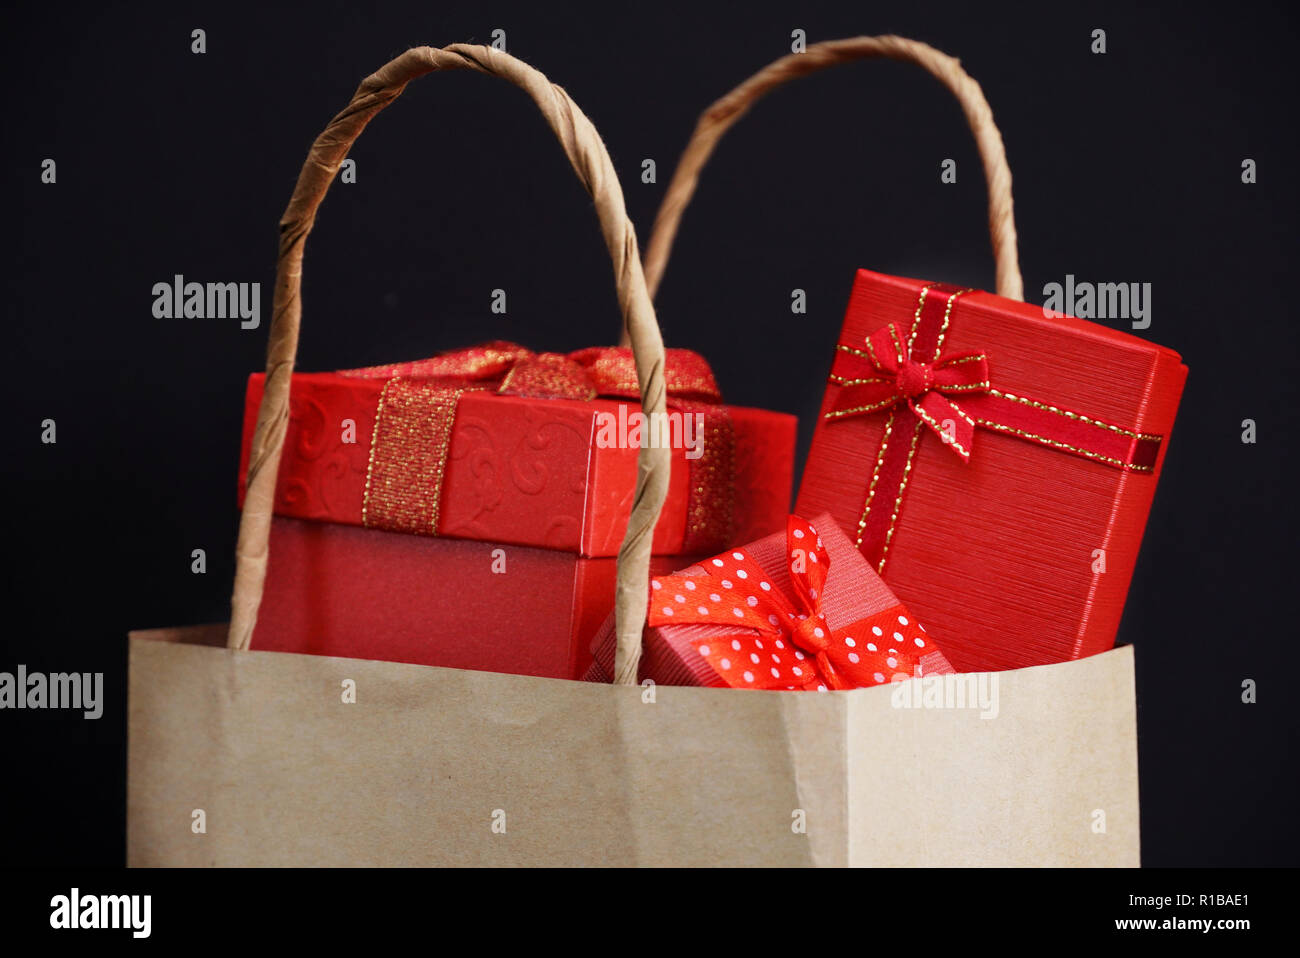 8b62c43c112c Tree red gift box in shopping bag on black background for shopping theme. -  Stock